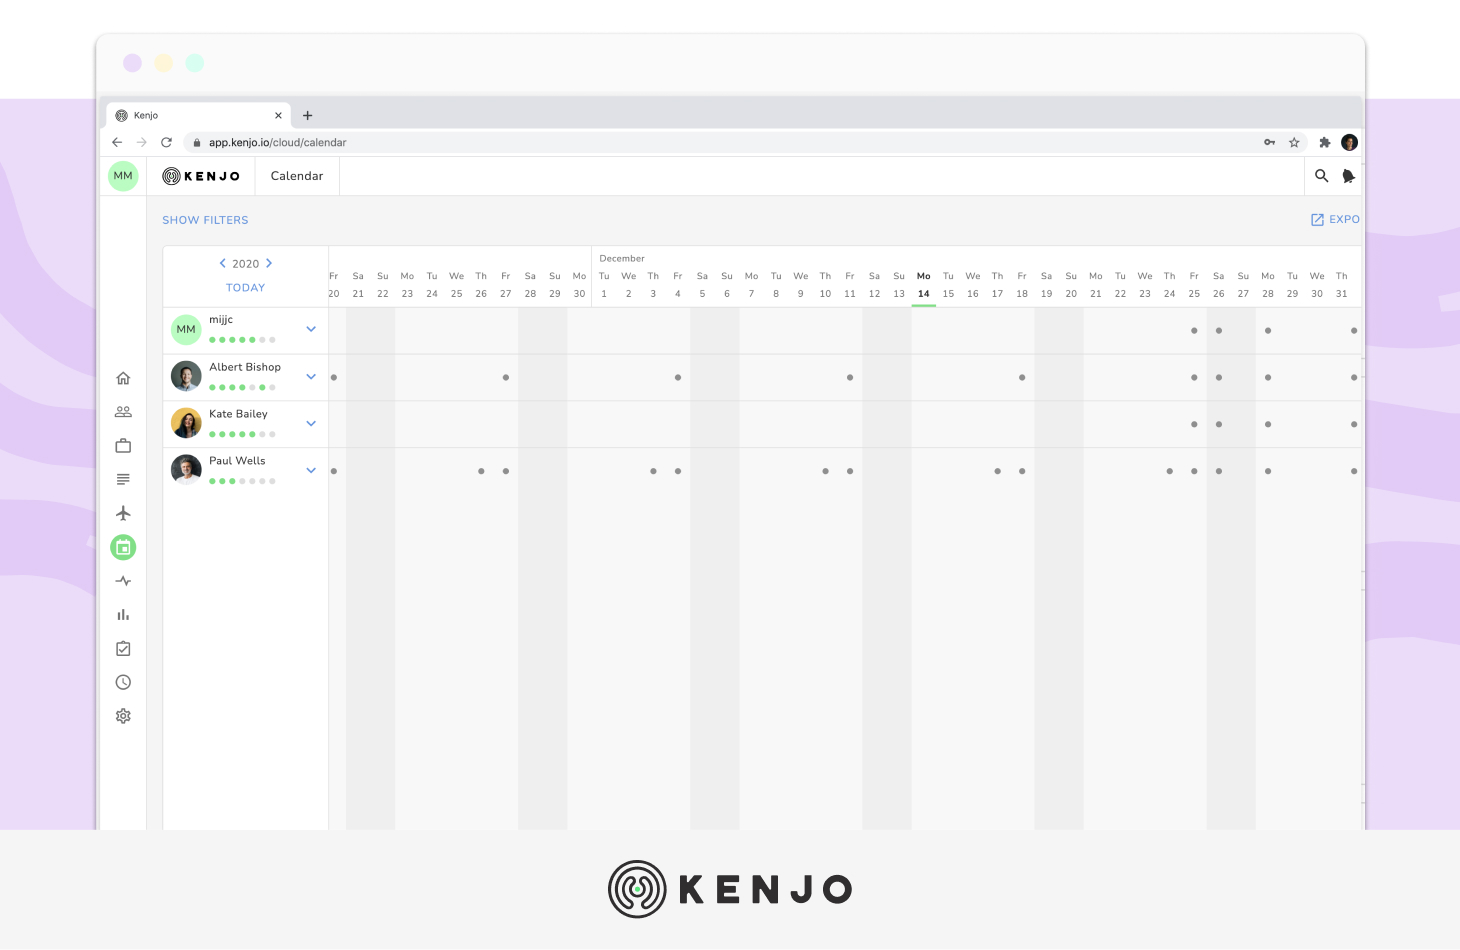 kenjo's Absence and leave management interface